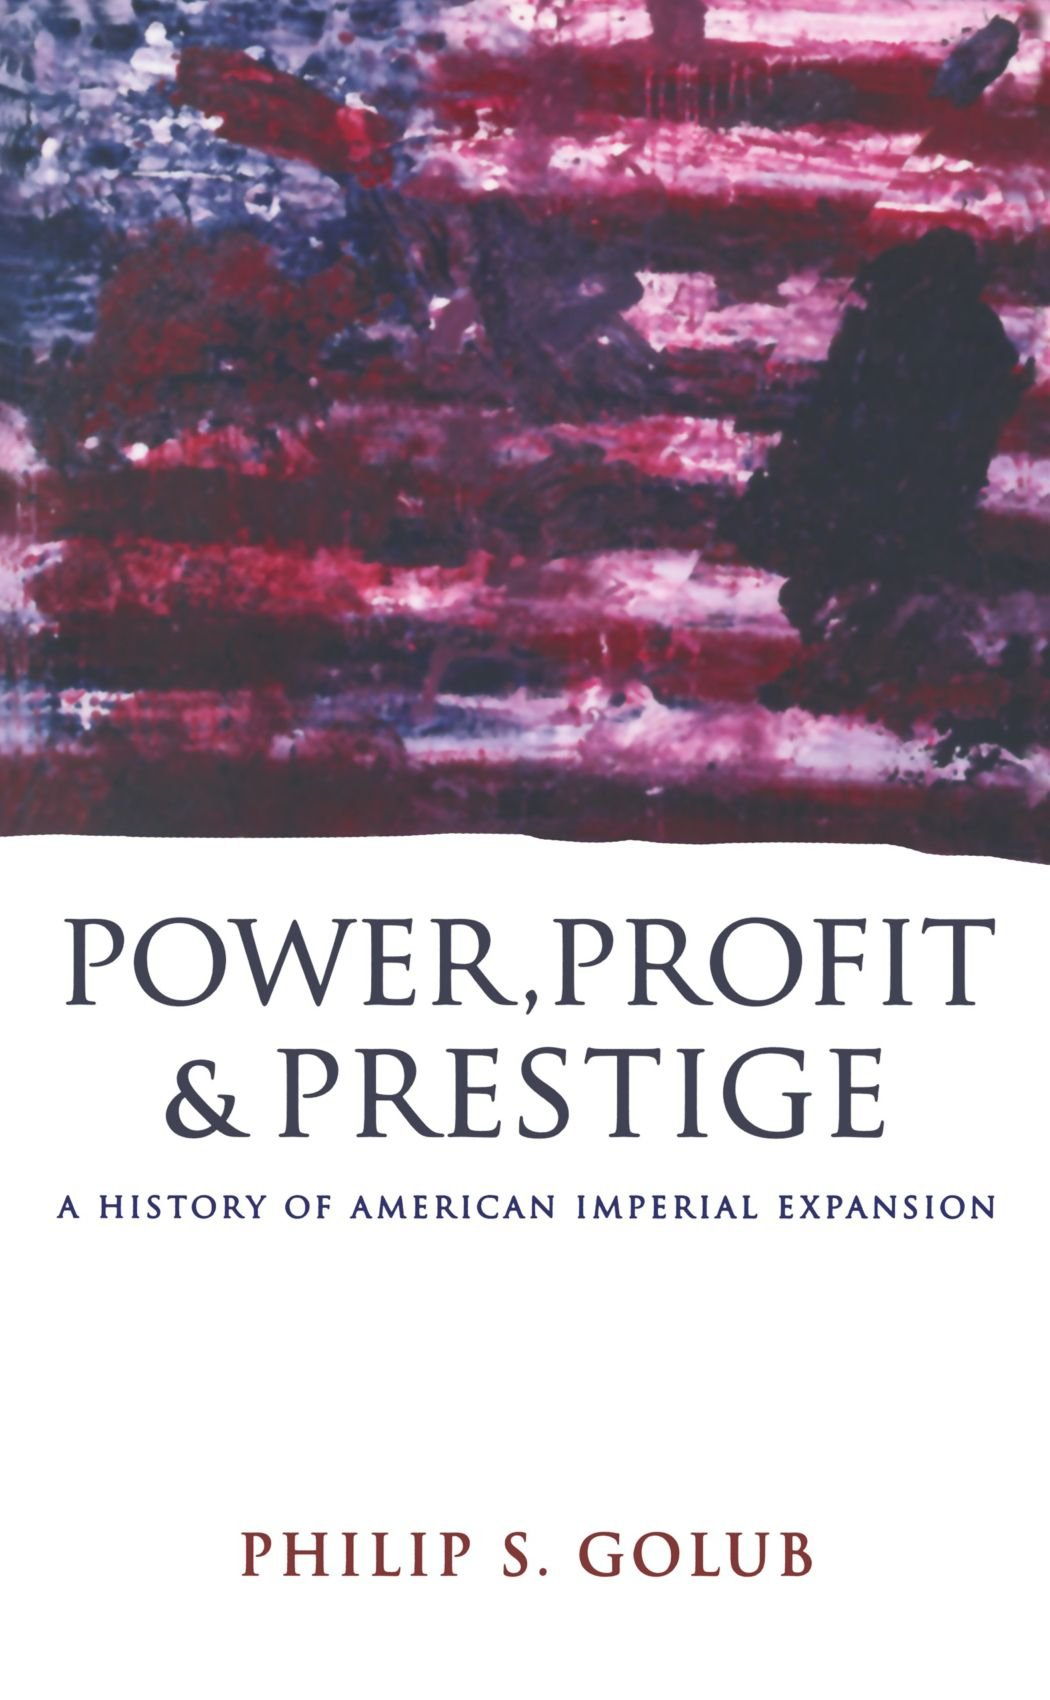 Power, Profit and Prestige: A History of American Imperial Expansion PDF